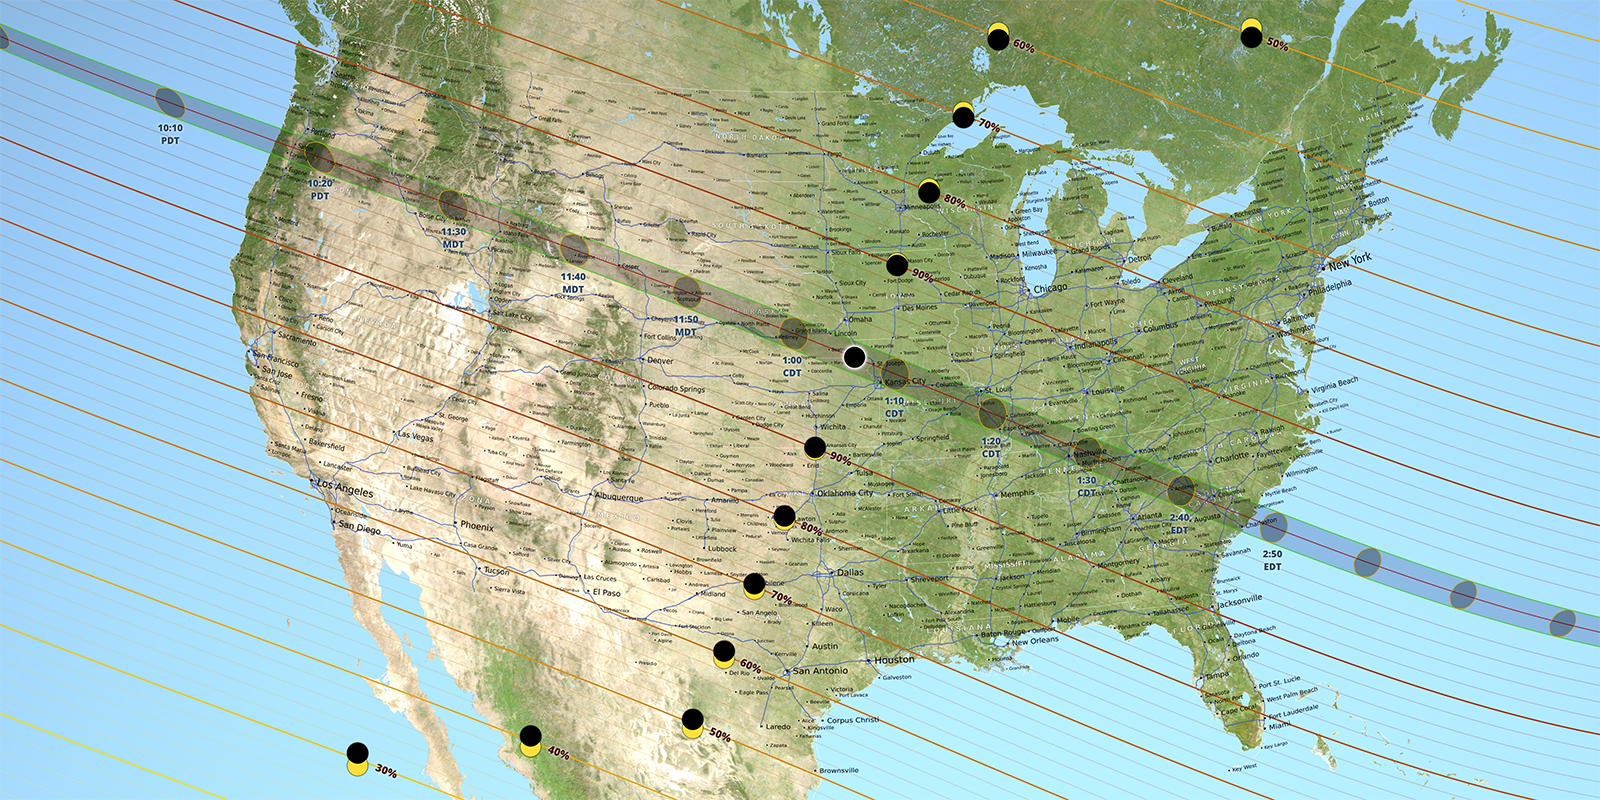 Aug 2017 eclipse map